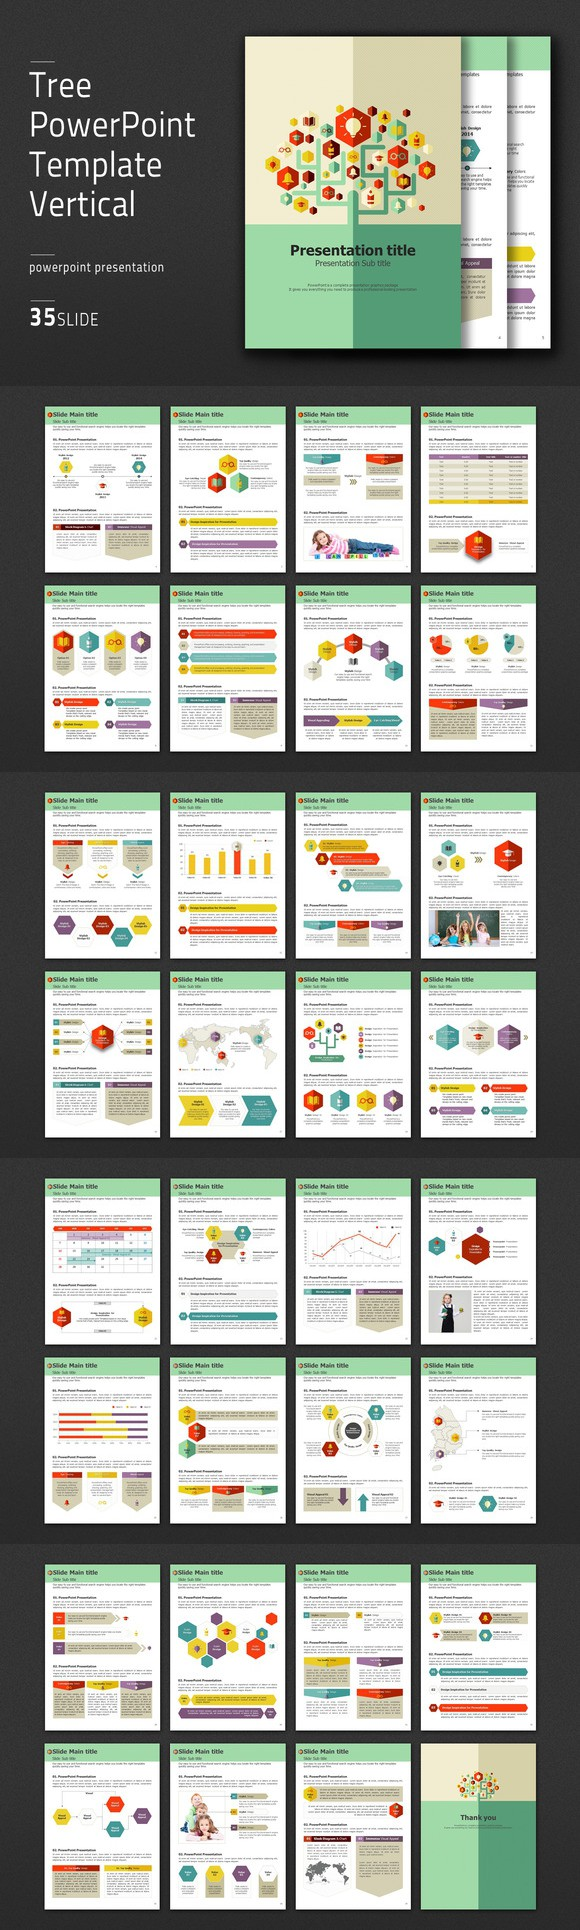 Tree powerpoint template vertical powerpoint templates 4100 tree powerpoint template vertical powerpoint templates 4100 toneelgroepblik Image collections